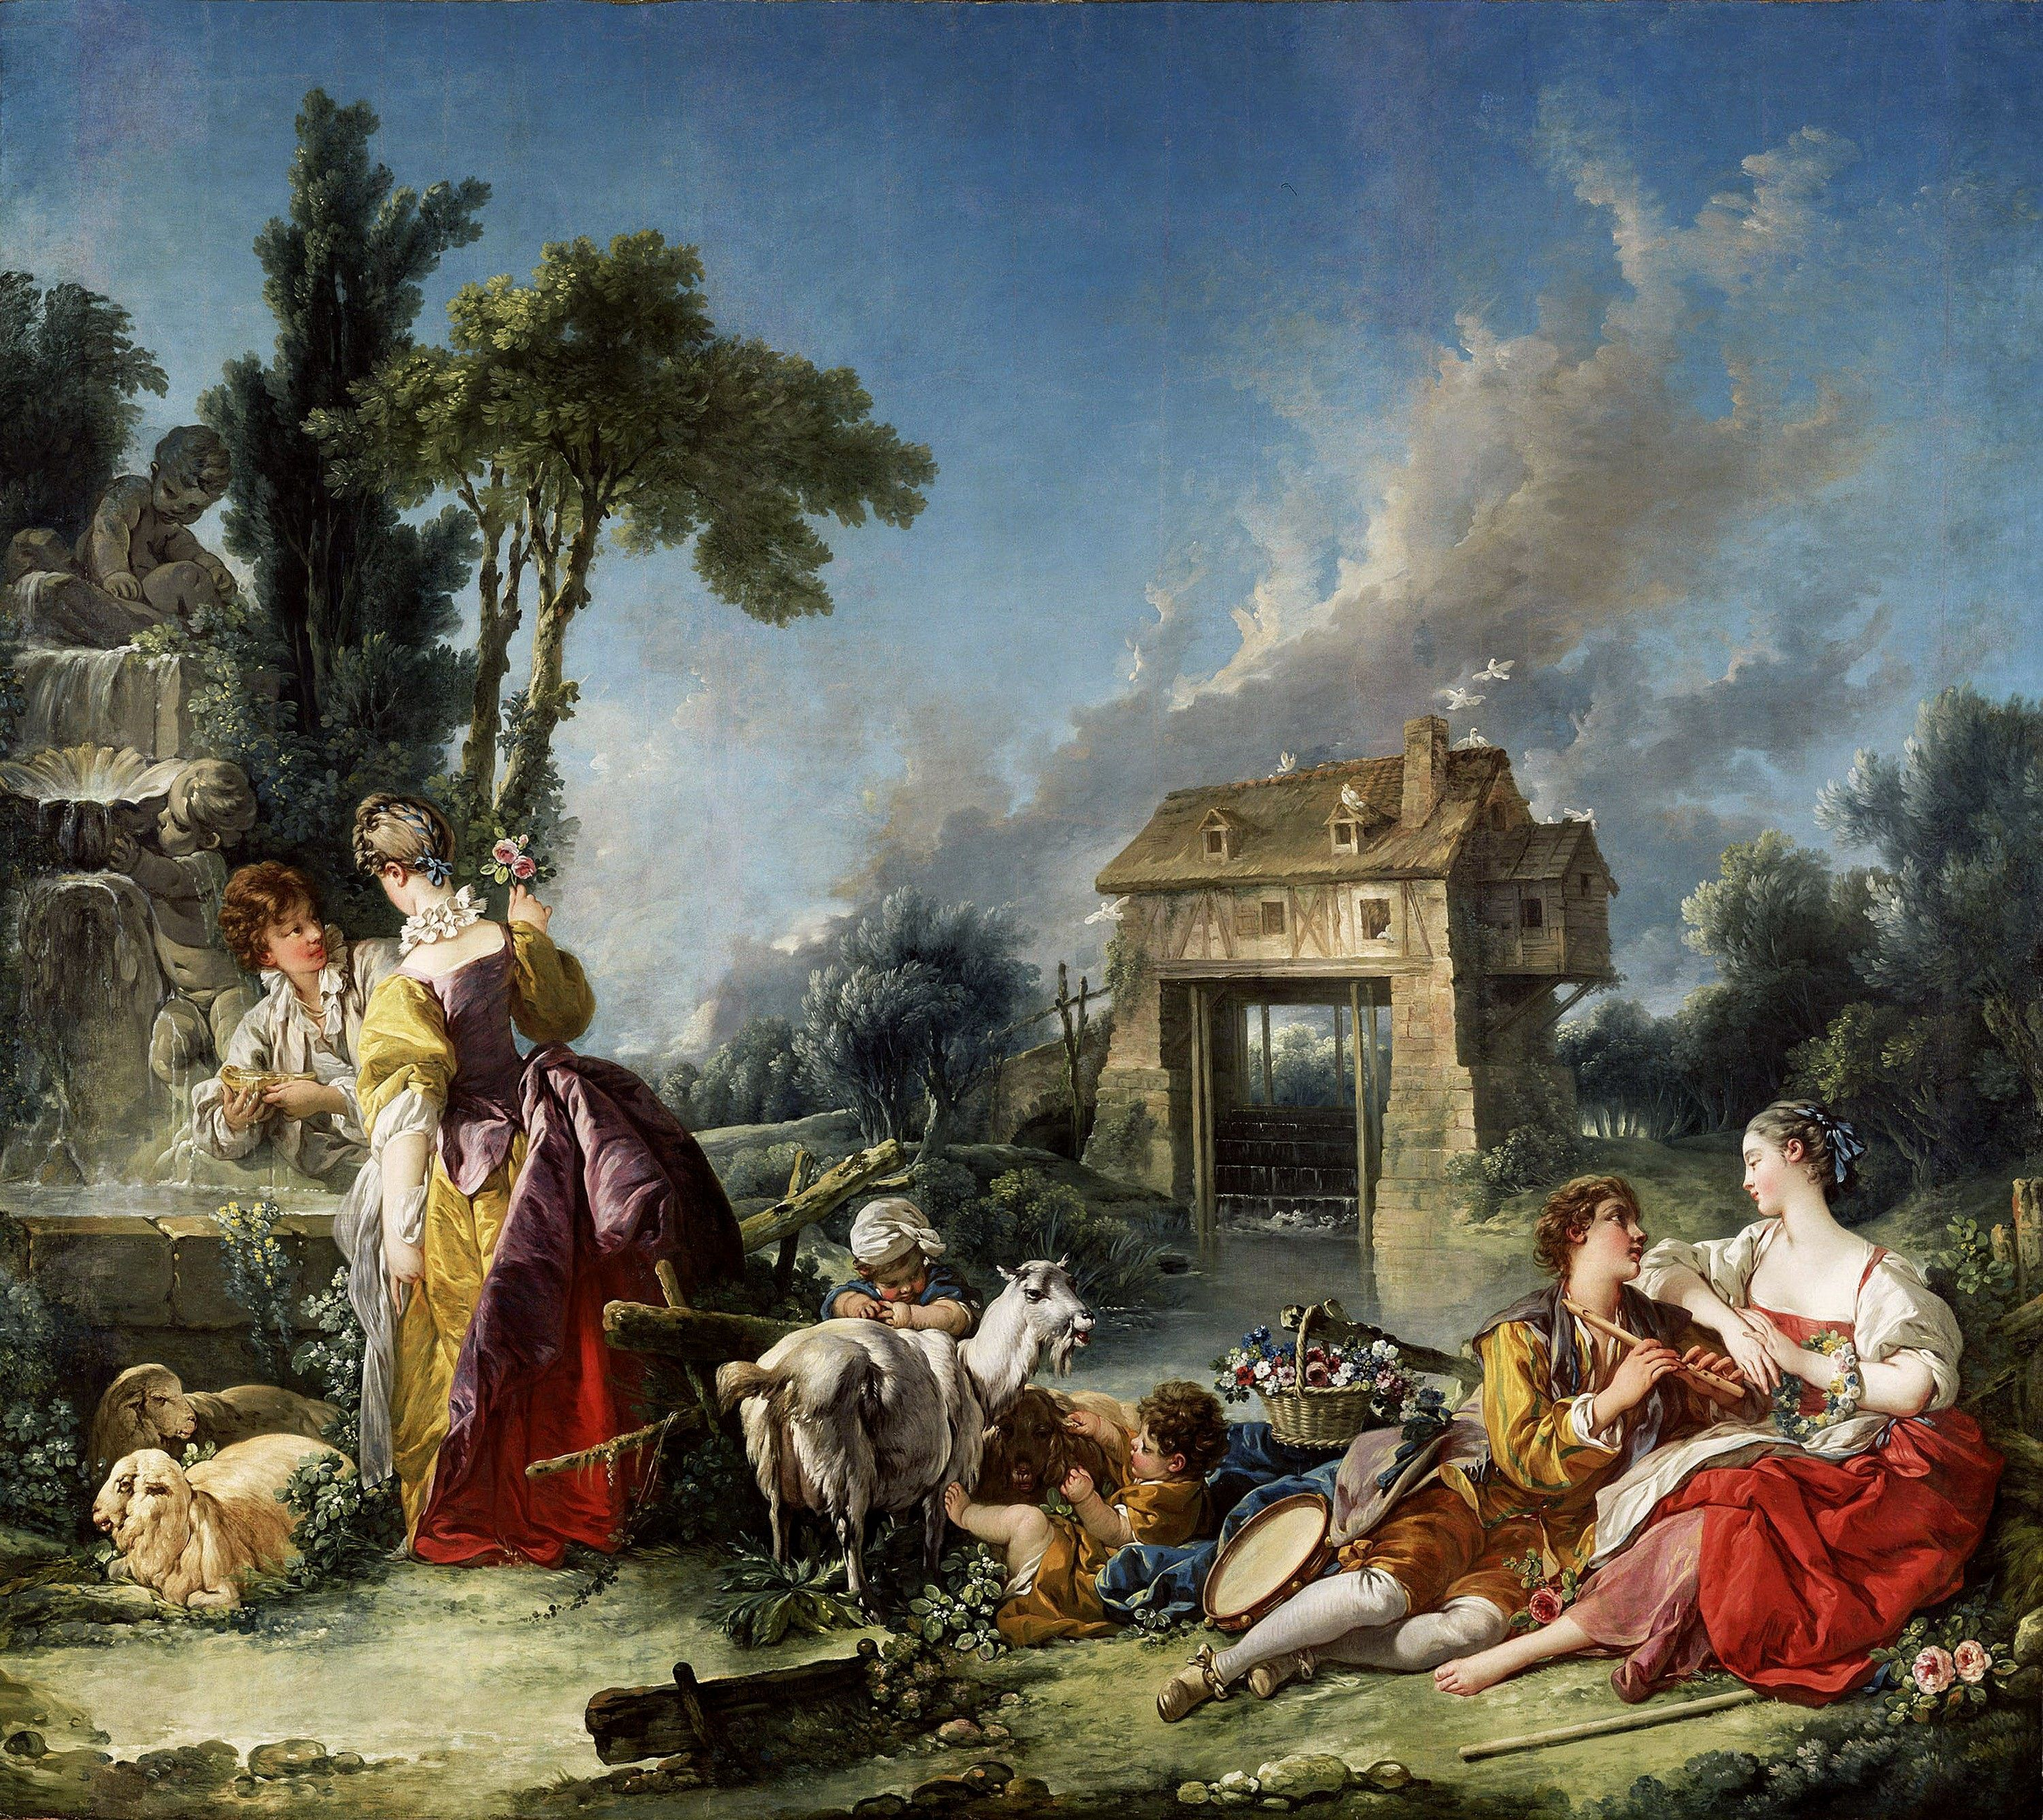 boucher-1748-la-fontaine-damour-getty-museum-malibu